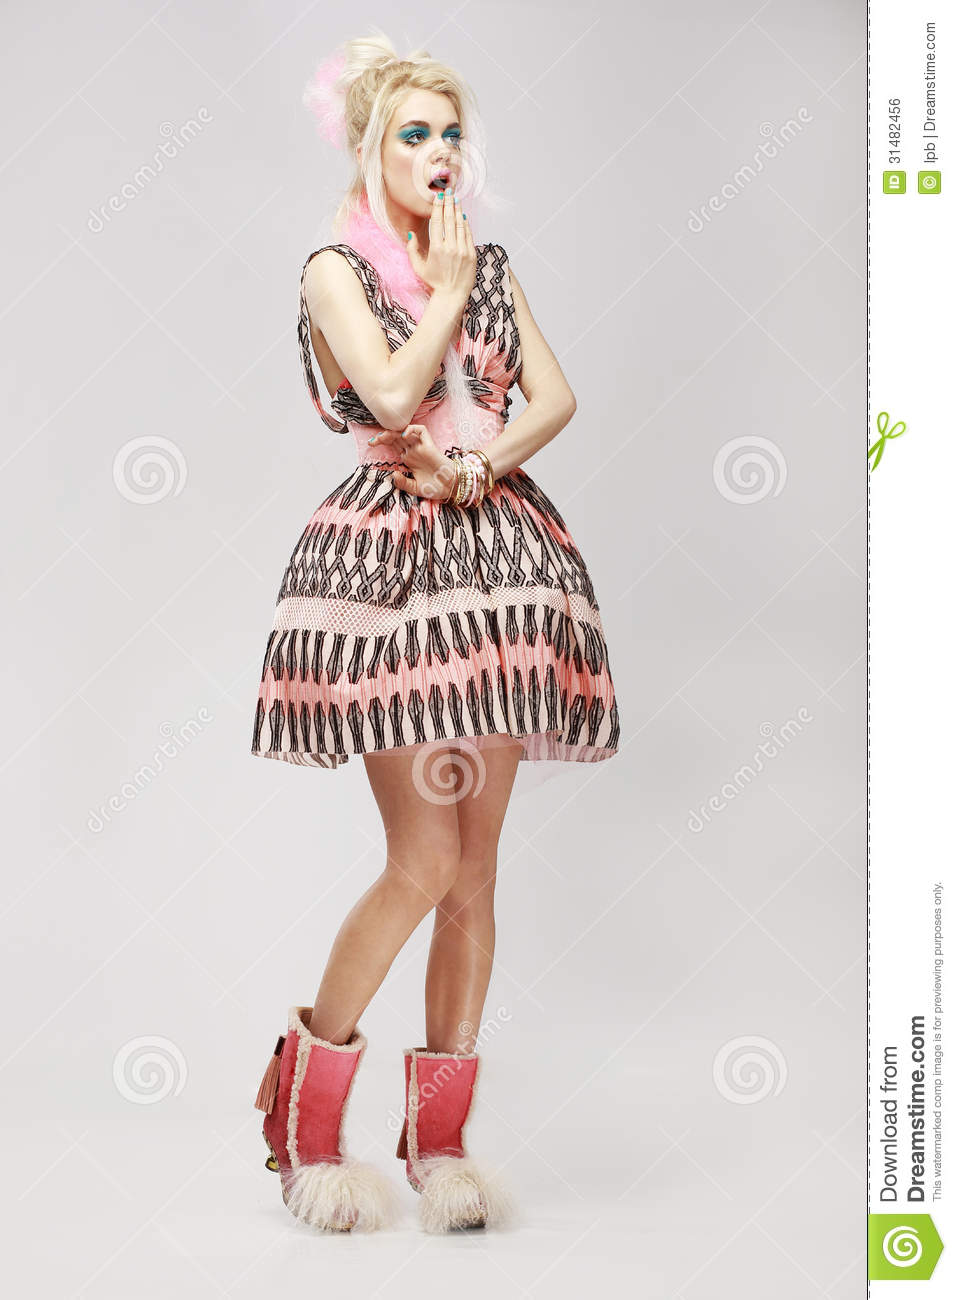 Trendy Fashionable 11 13 Year Old Ethnic Multi Cultural: Fashion Style. Surprised Eccentric Woman In Trendy Dress